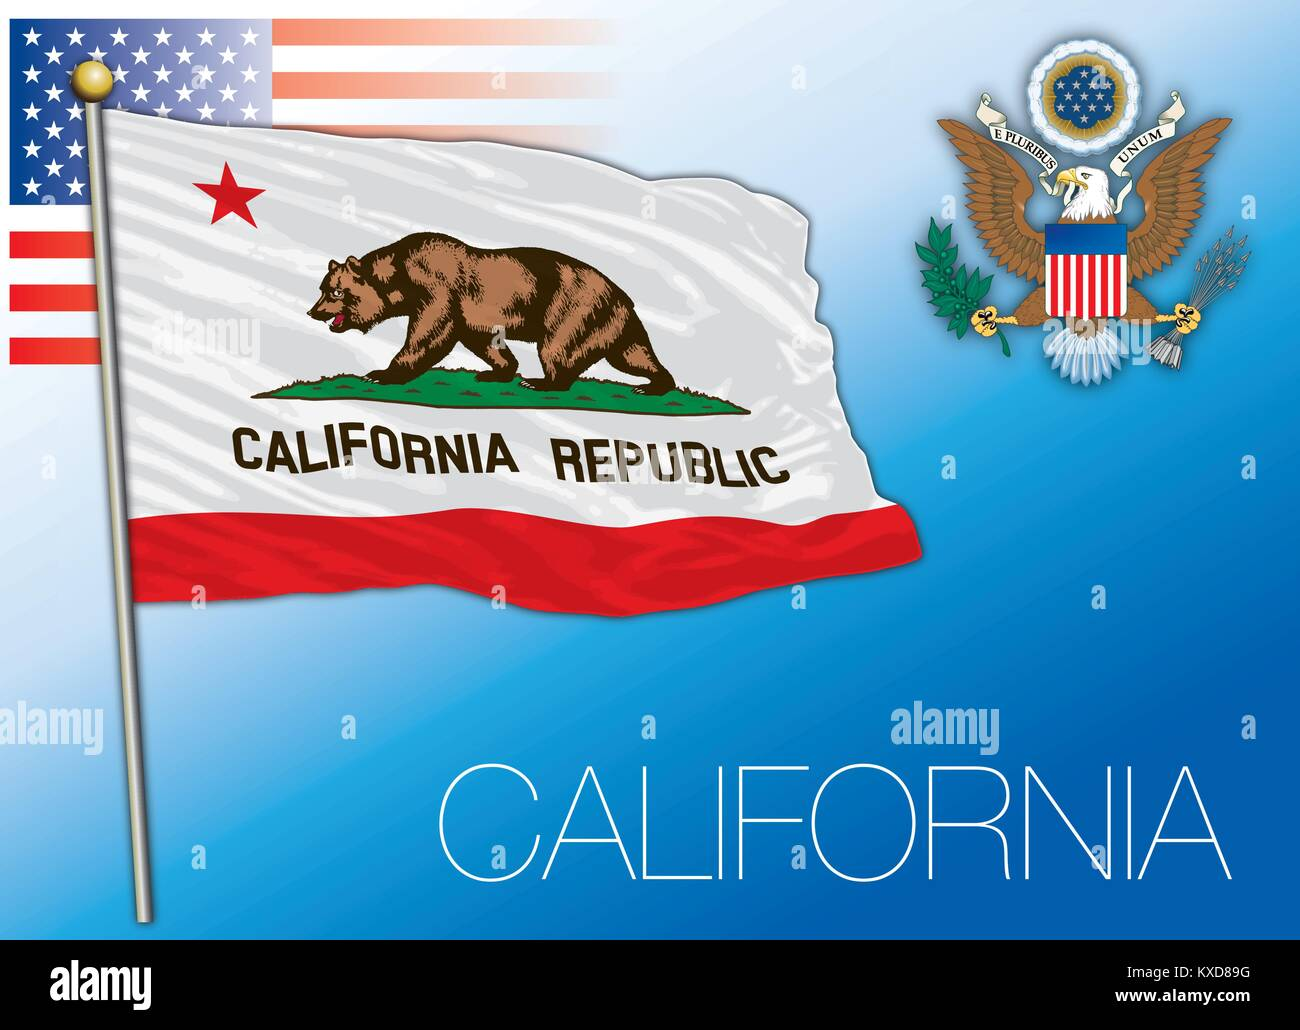 California federal state flag, United States - Stock Vector